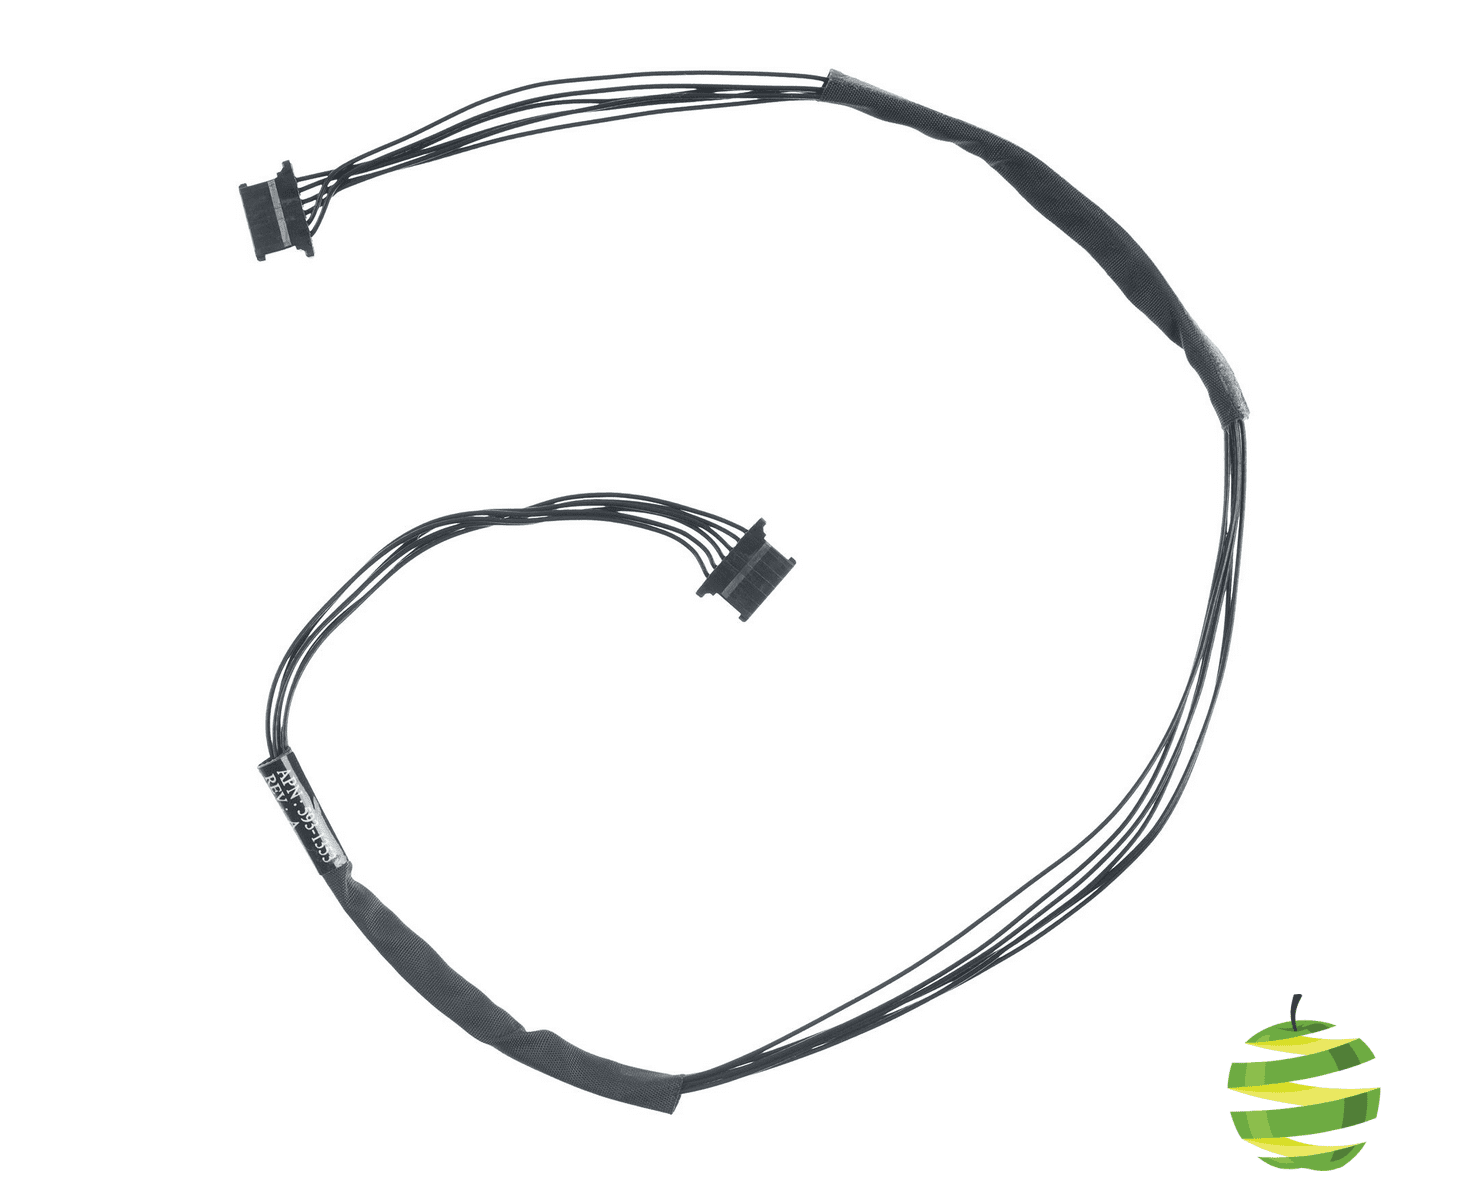 1471x1191 Display Power Cable For Imac